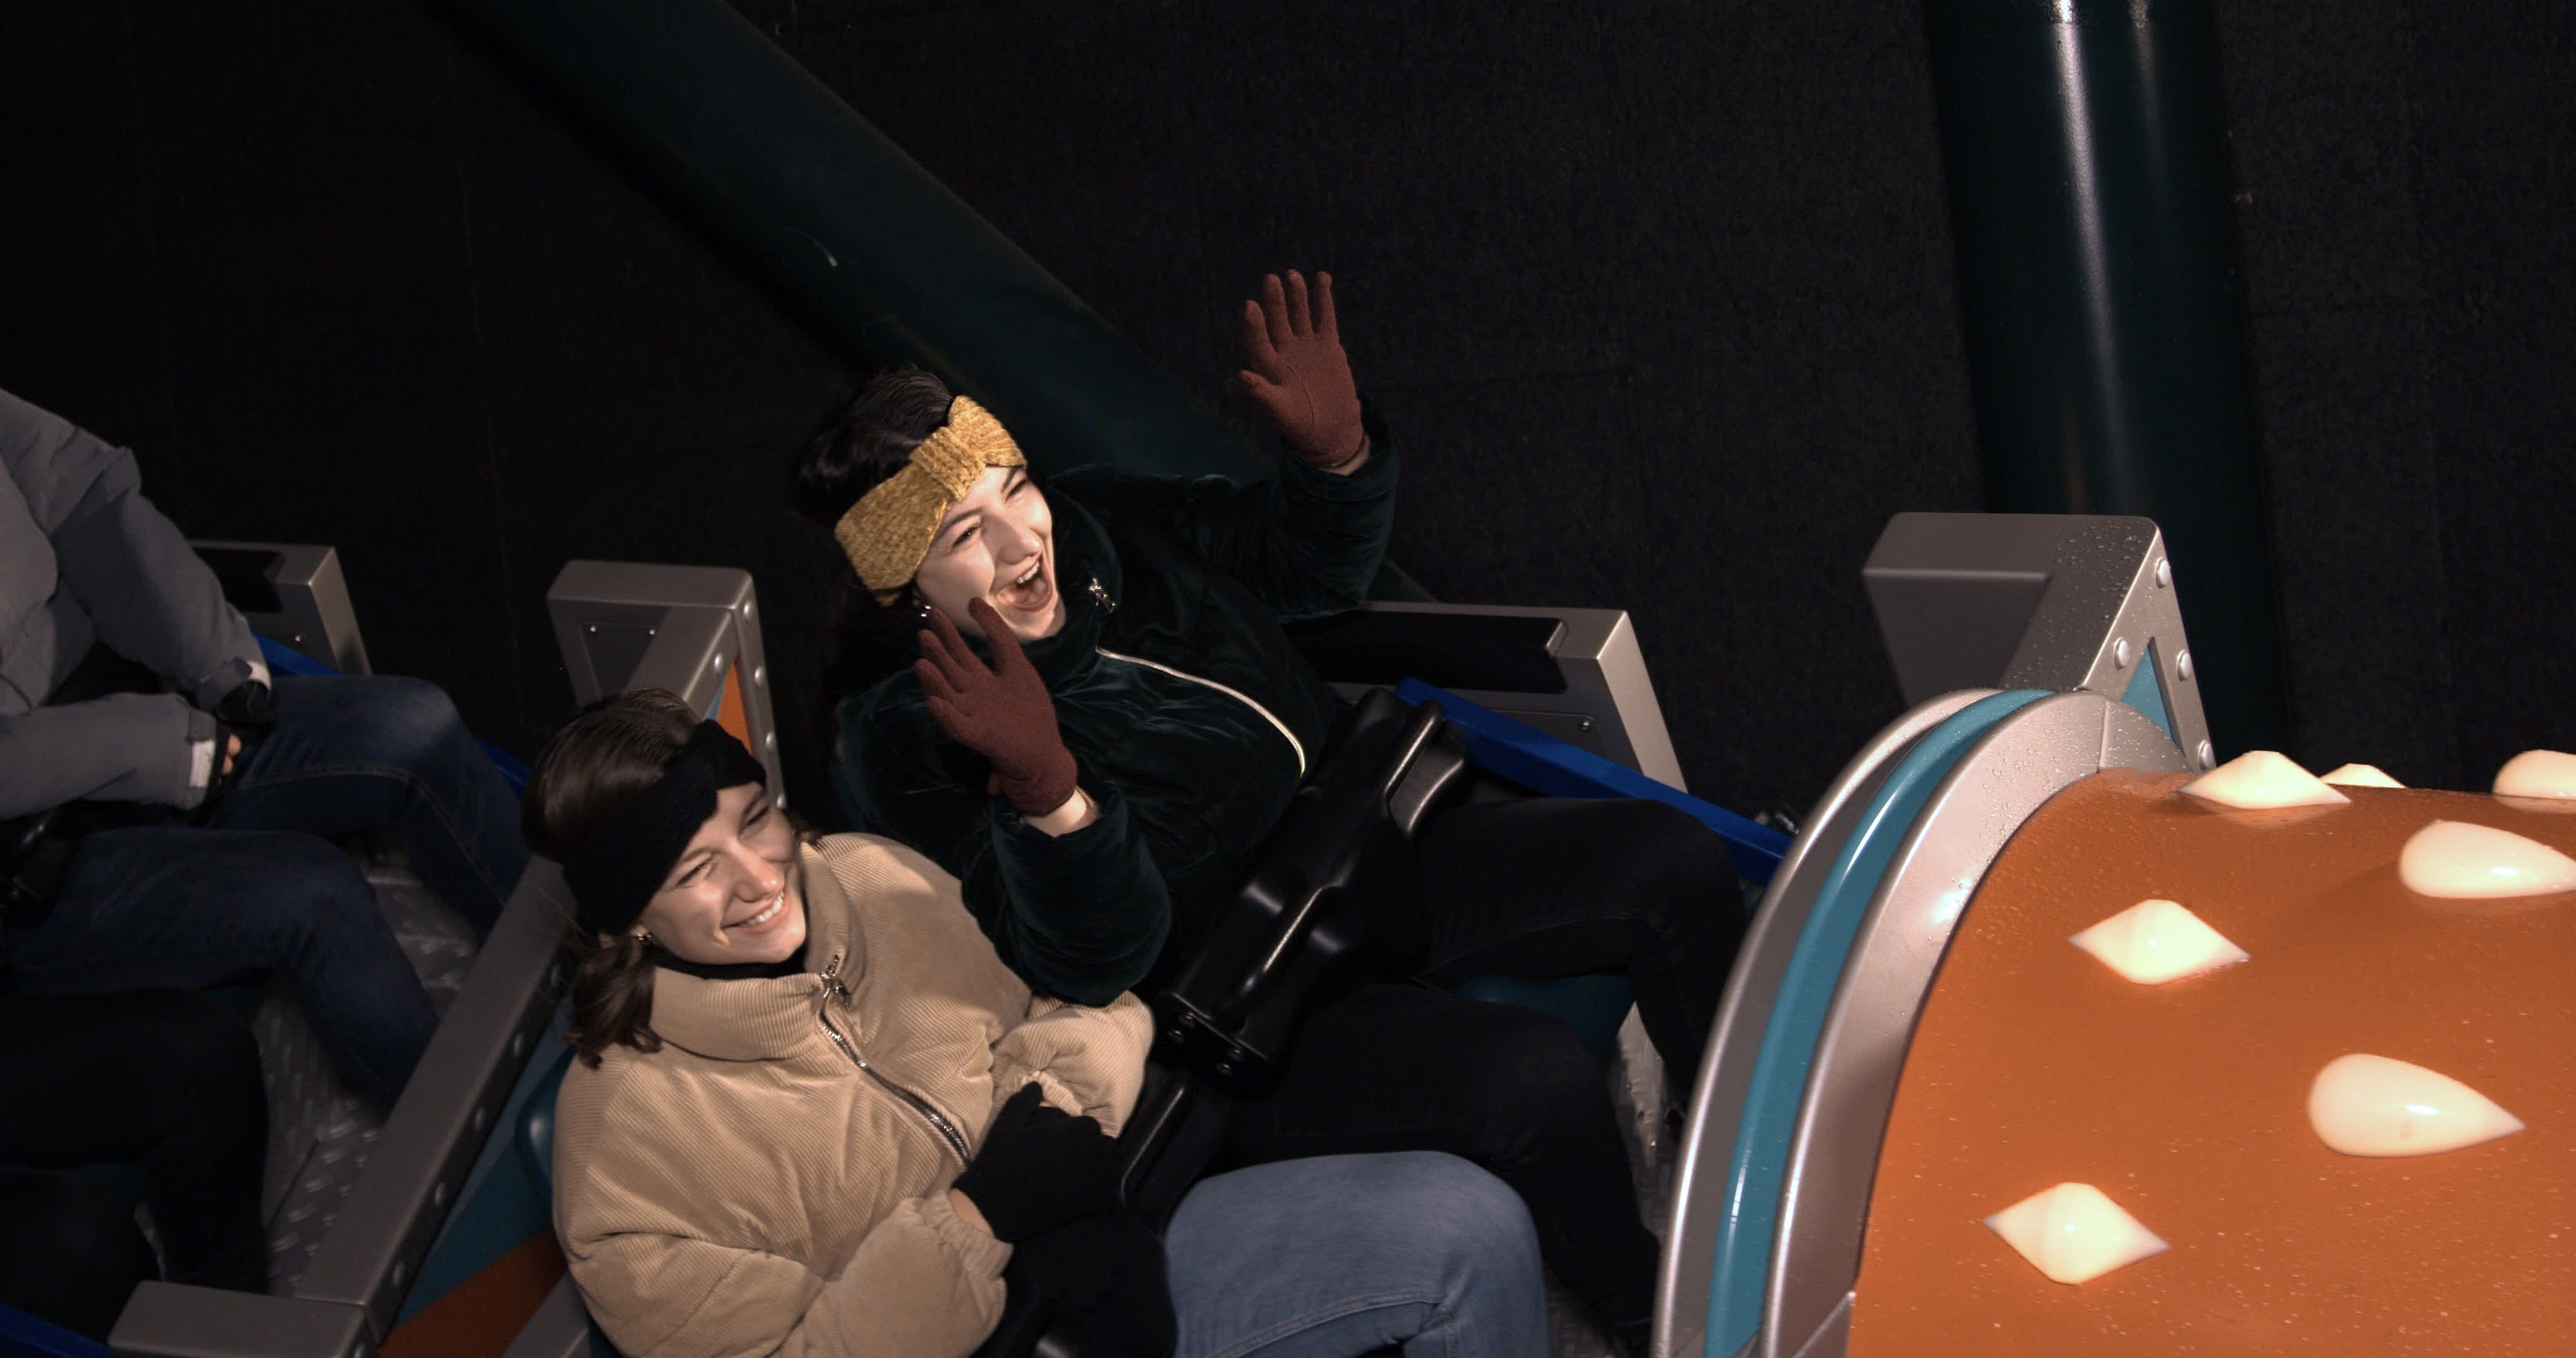 Two people riding a rollercoaster and smiling raising their hands up